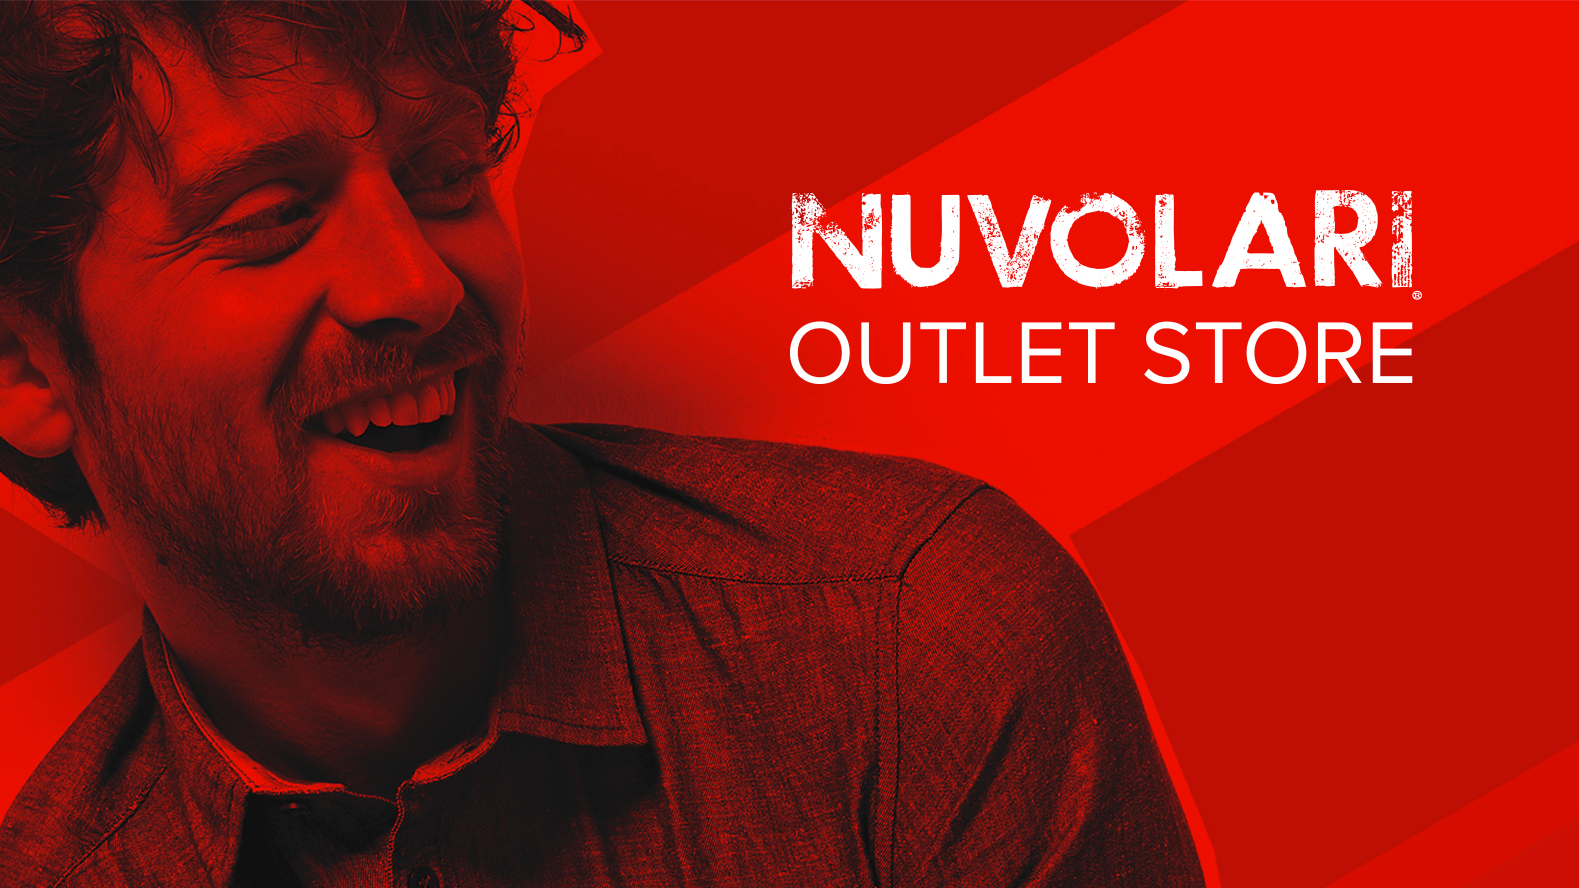 Outlet Store Nuvolari